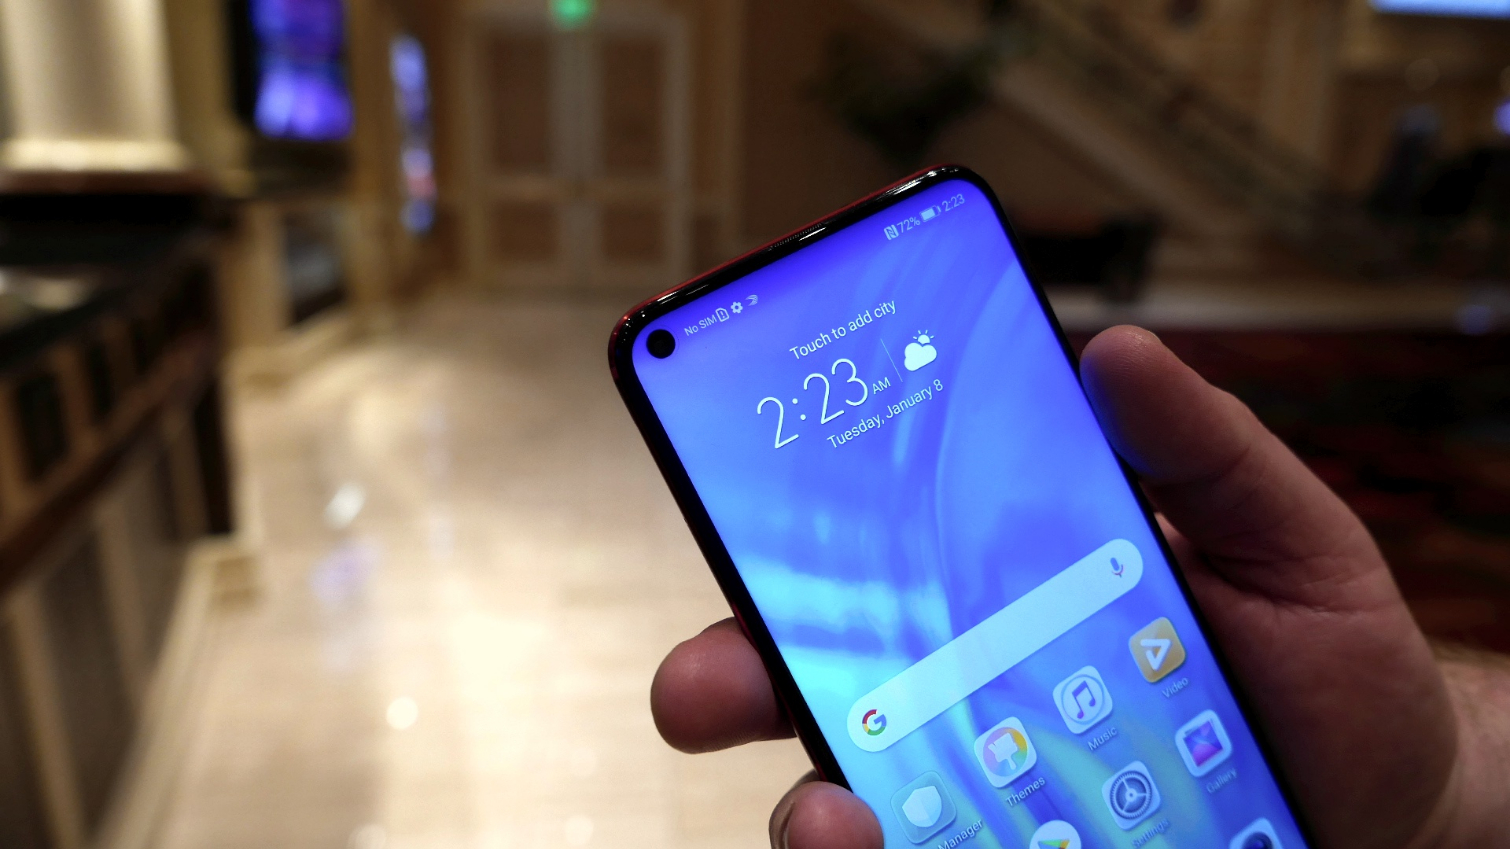 Honor View 20 First Look: The First Post-Notch Flagship Phone